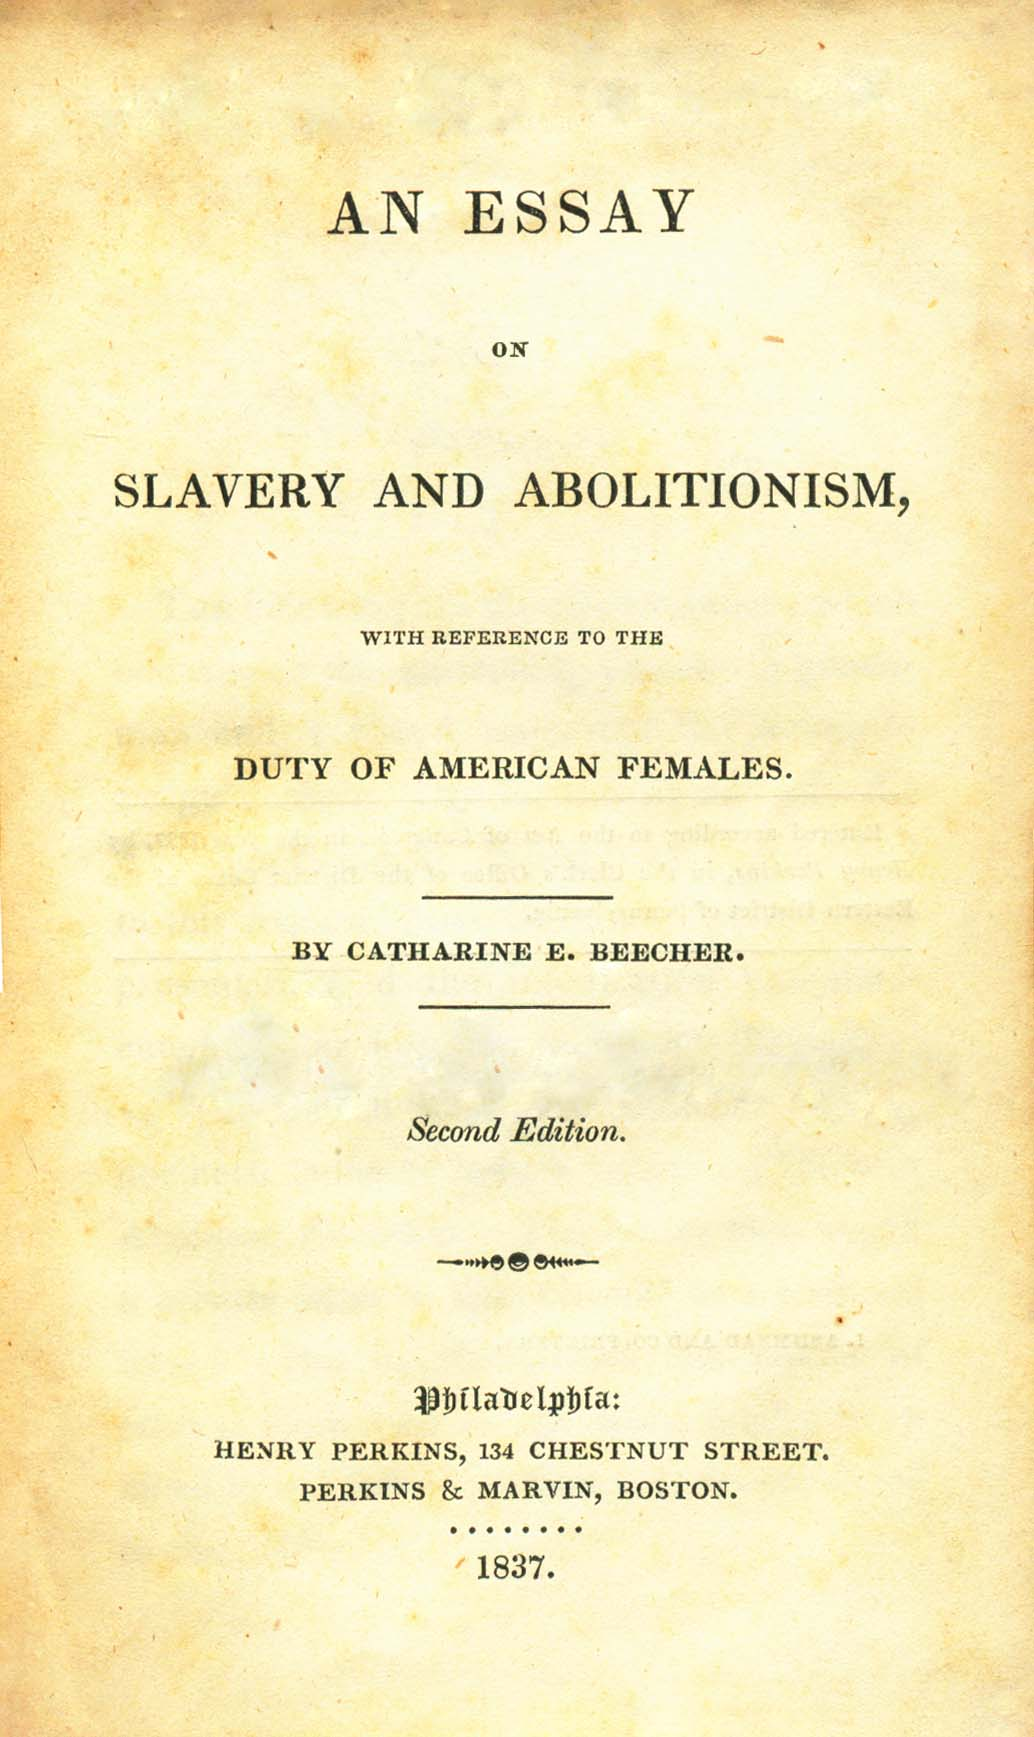 Catharine Beecher, Essay on Slavery and Abolitionism, 1837